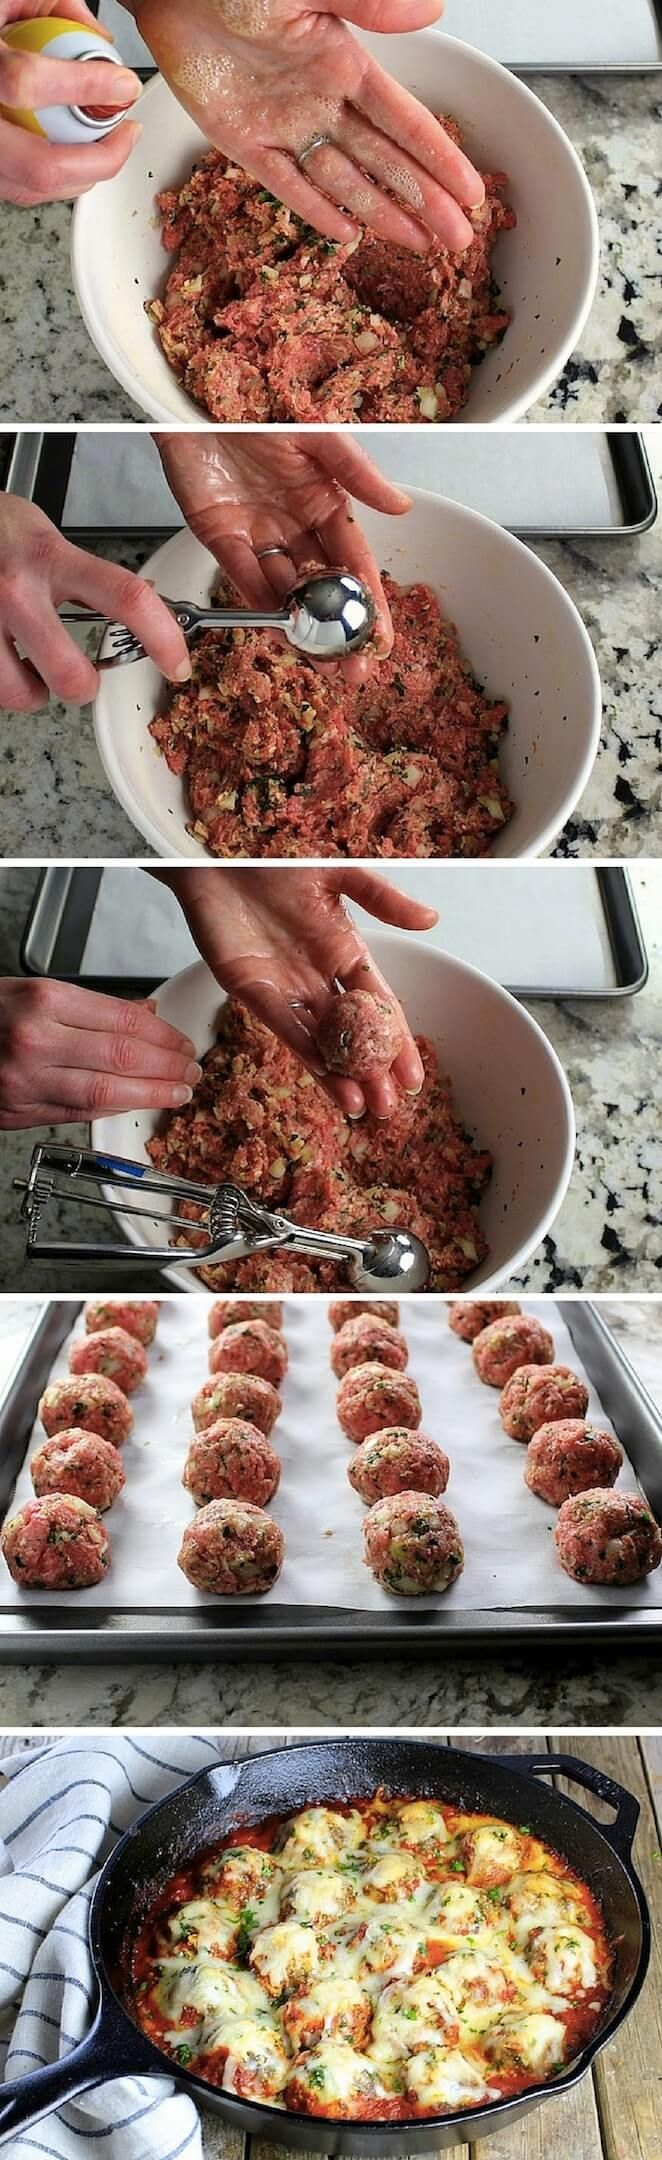 Italian Parmigiana Meatballs. A classic, perfected: meatballs coated in marinara, smothered w/mozzarella & Parmesan cheese. Easy recipe exploding with flavor! http://tasteandsee.com